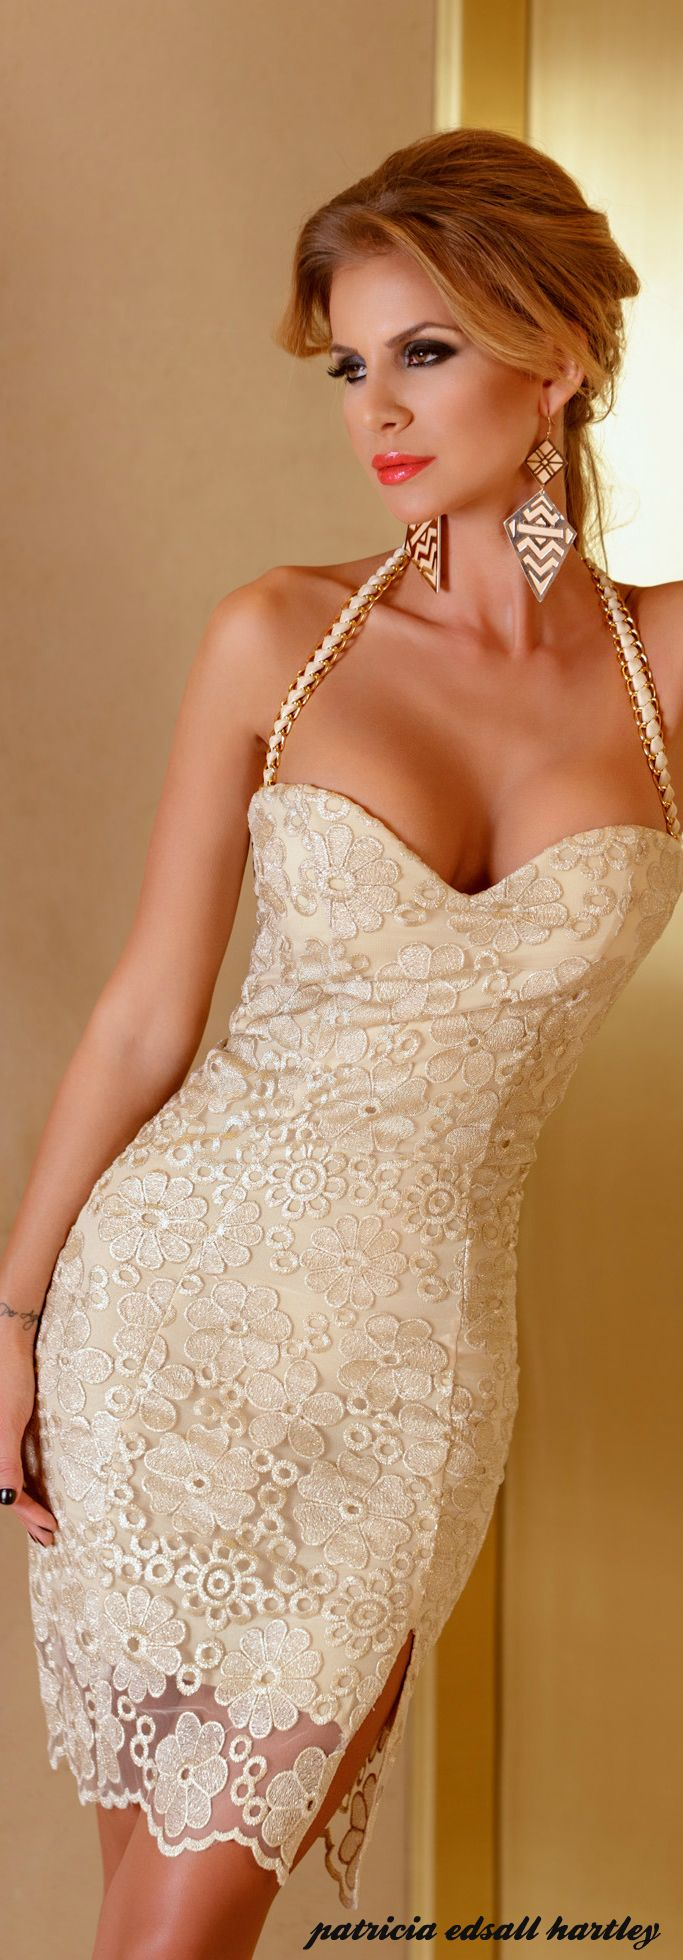 Beige Lace Evening/Wedding Dress w. Slight Slit @ Left Thigh ...